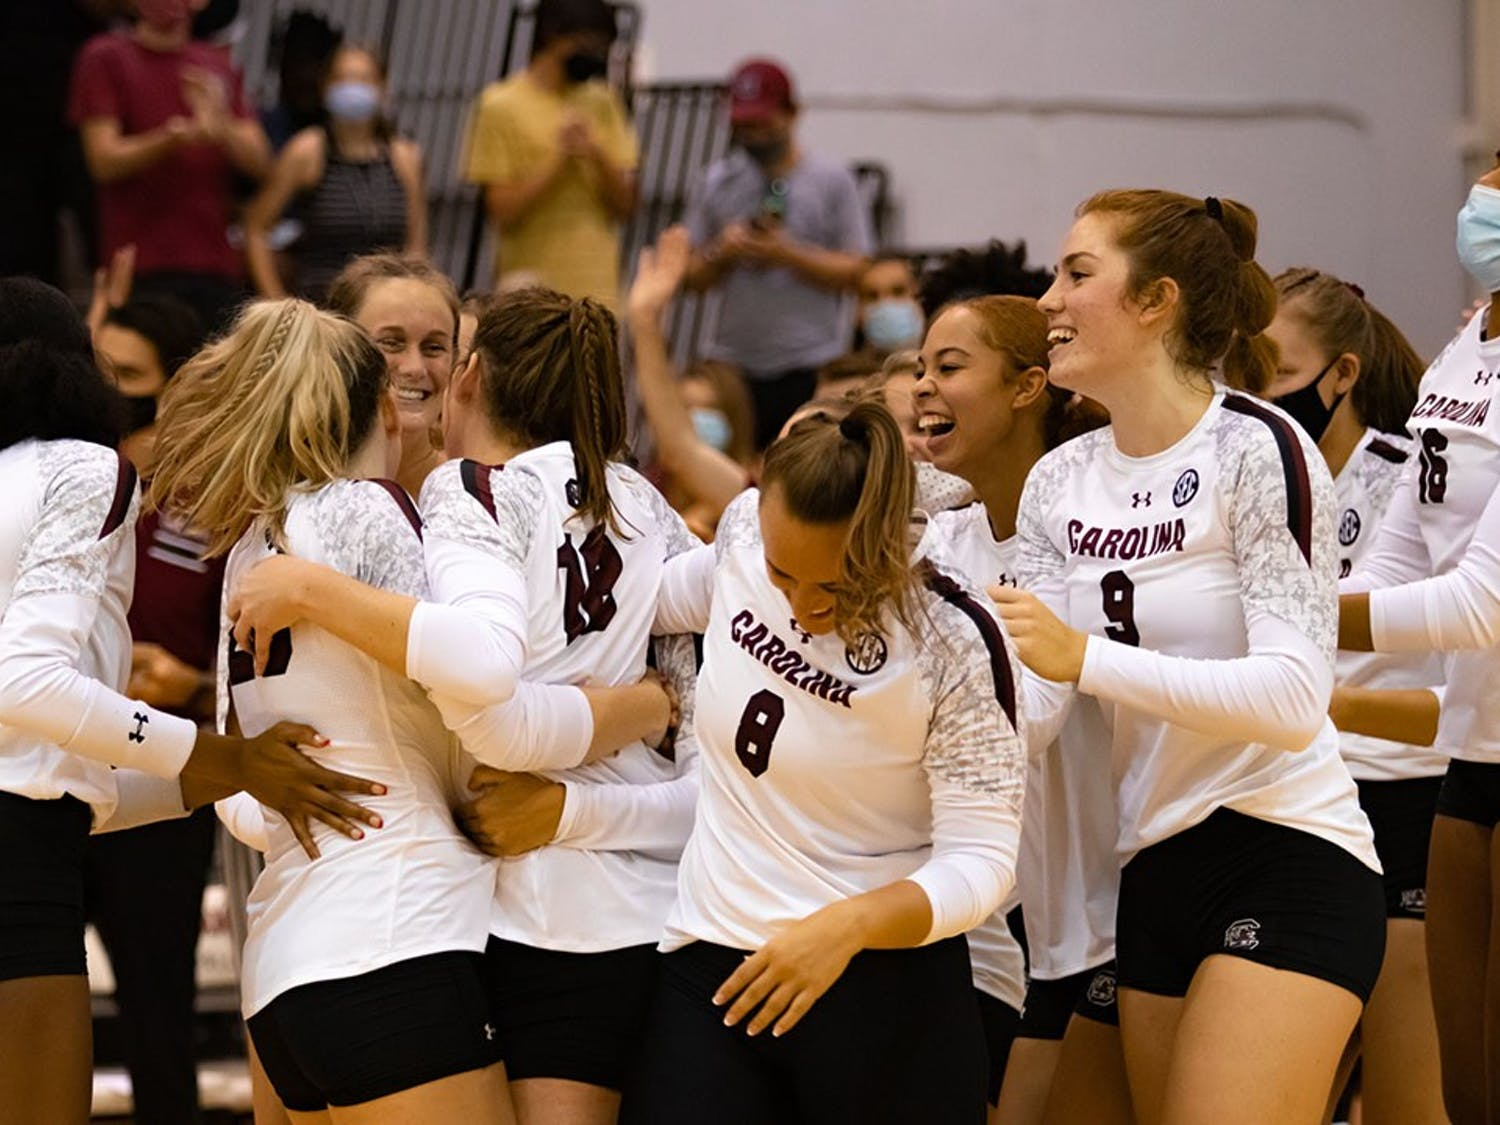 The Gamecock Volleyball team celebrates Freshman Emmy Rollins first collegiate career kill. Rollins earned the game winning point completing a three-set sweep over the High Point Panthers.